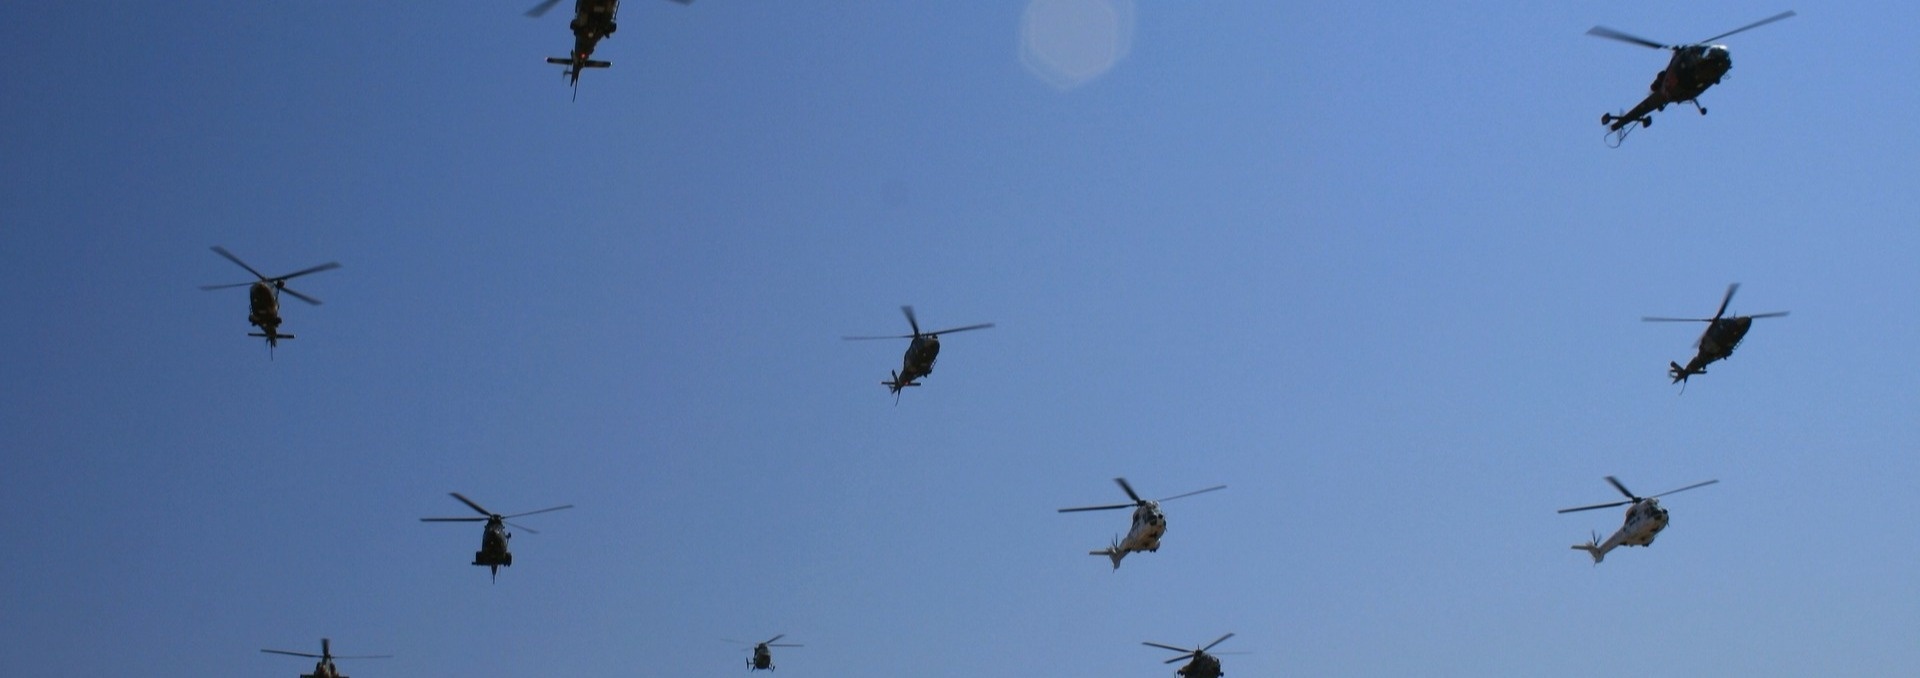 helicopters-174531_1920-copy-2